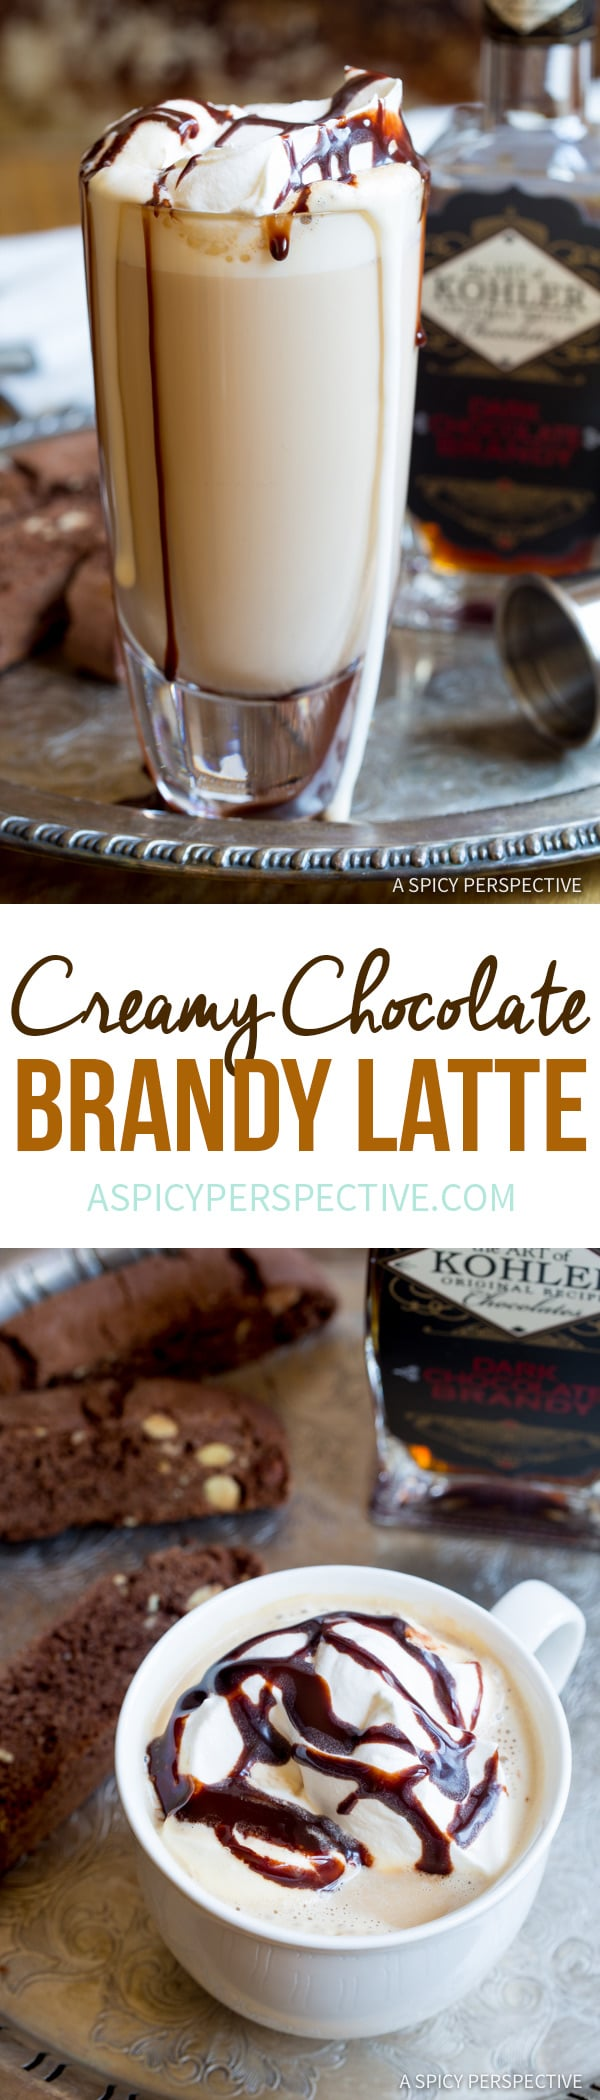 Creamy Chocolate Brandy Latte Recipe | ASpicyPerspective.com